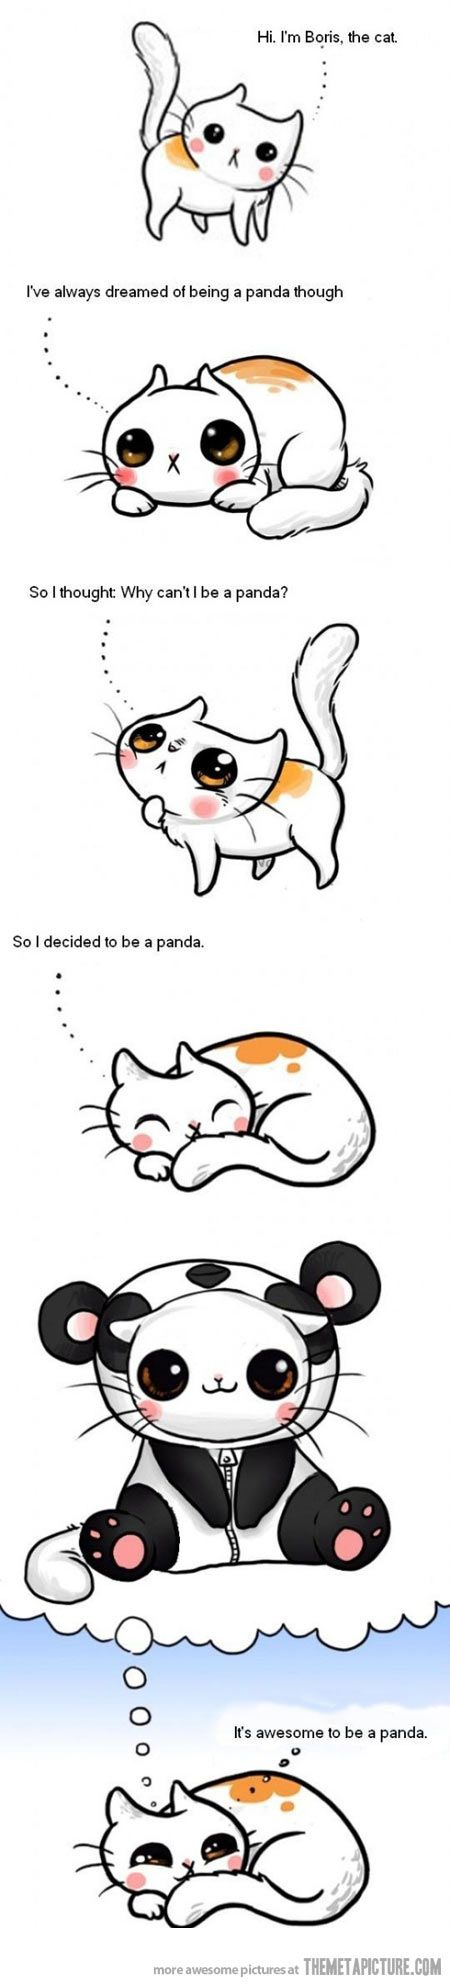 Why can't I be a panda? So ADORABLE!!